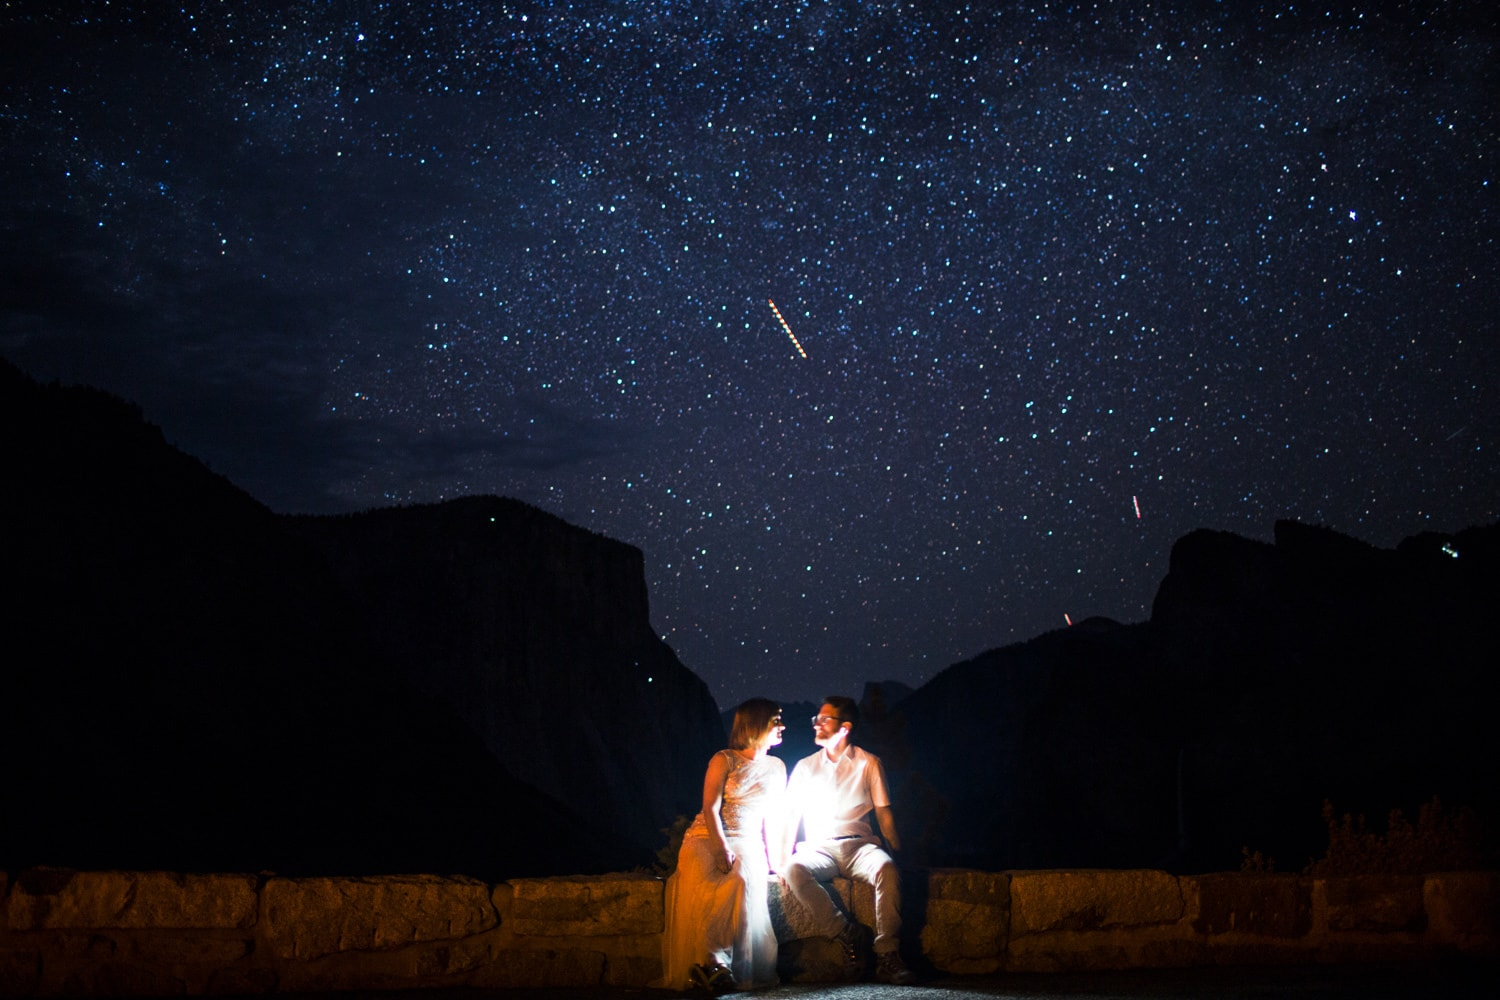 Yosemite elopement nightime photographer stars at Tunnel View with Half Dome and El Capitan